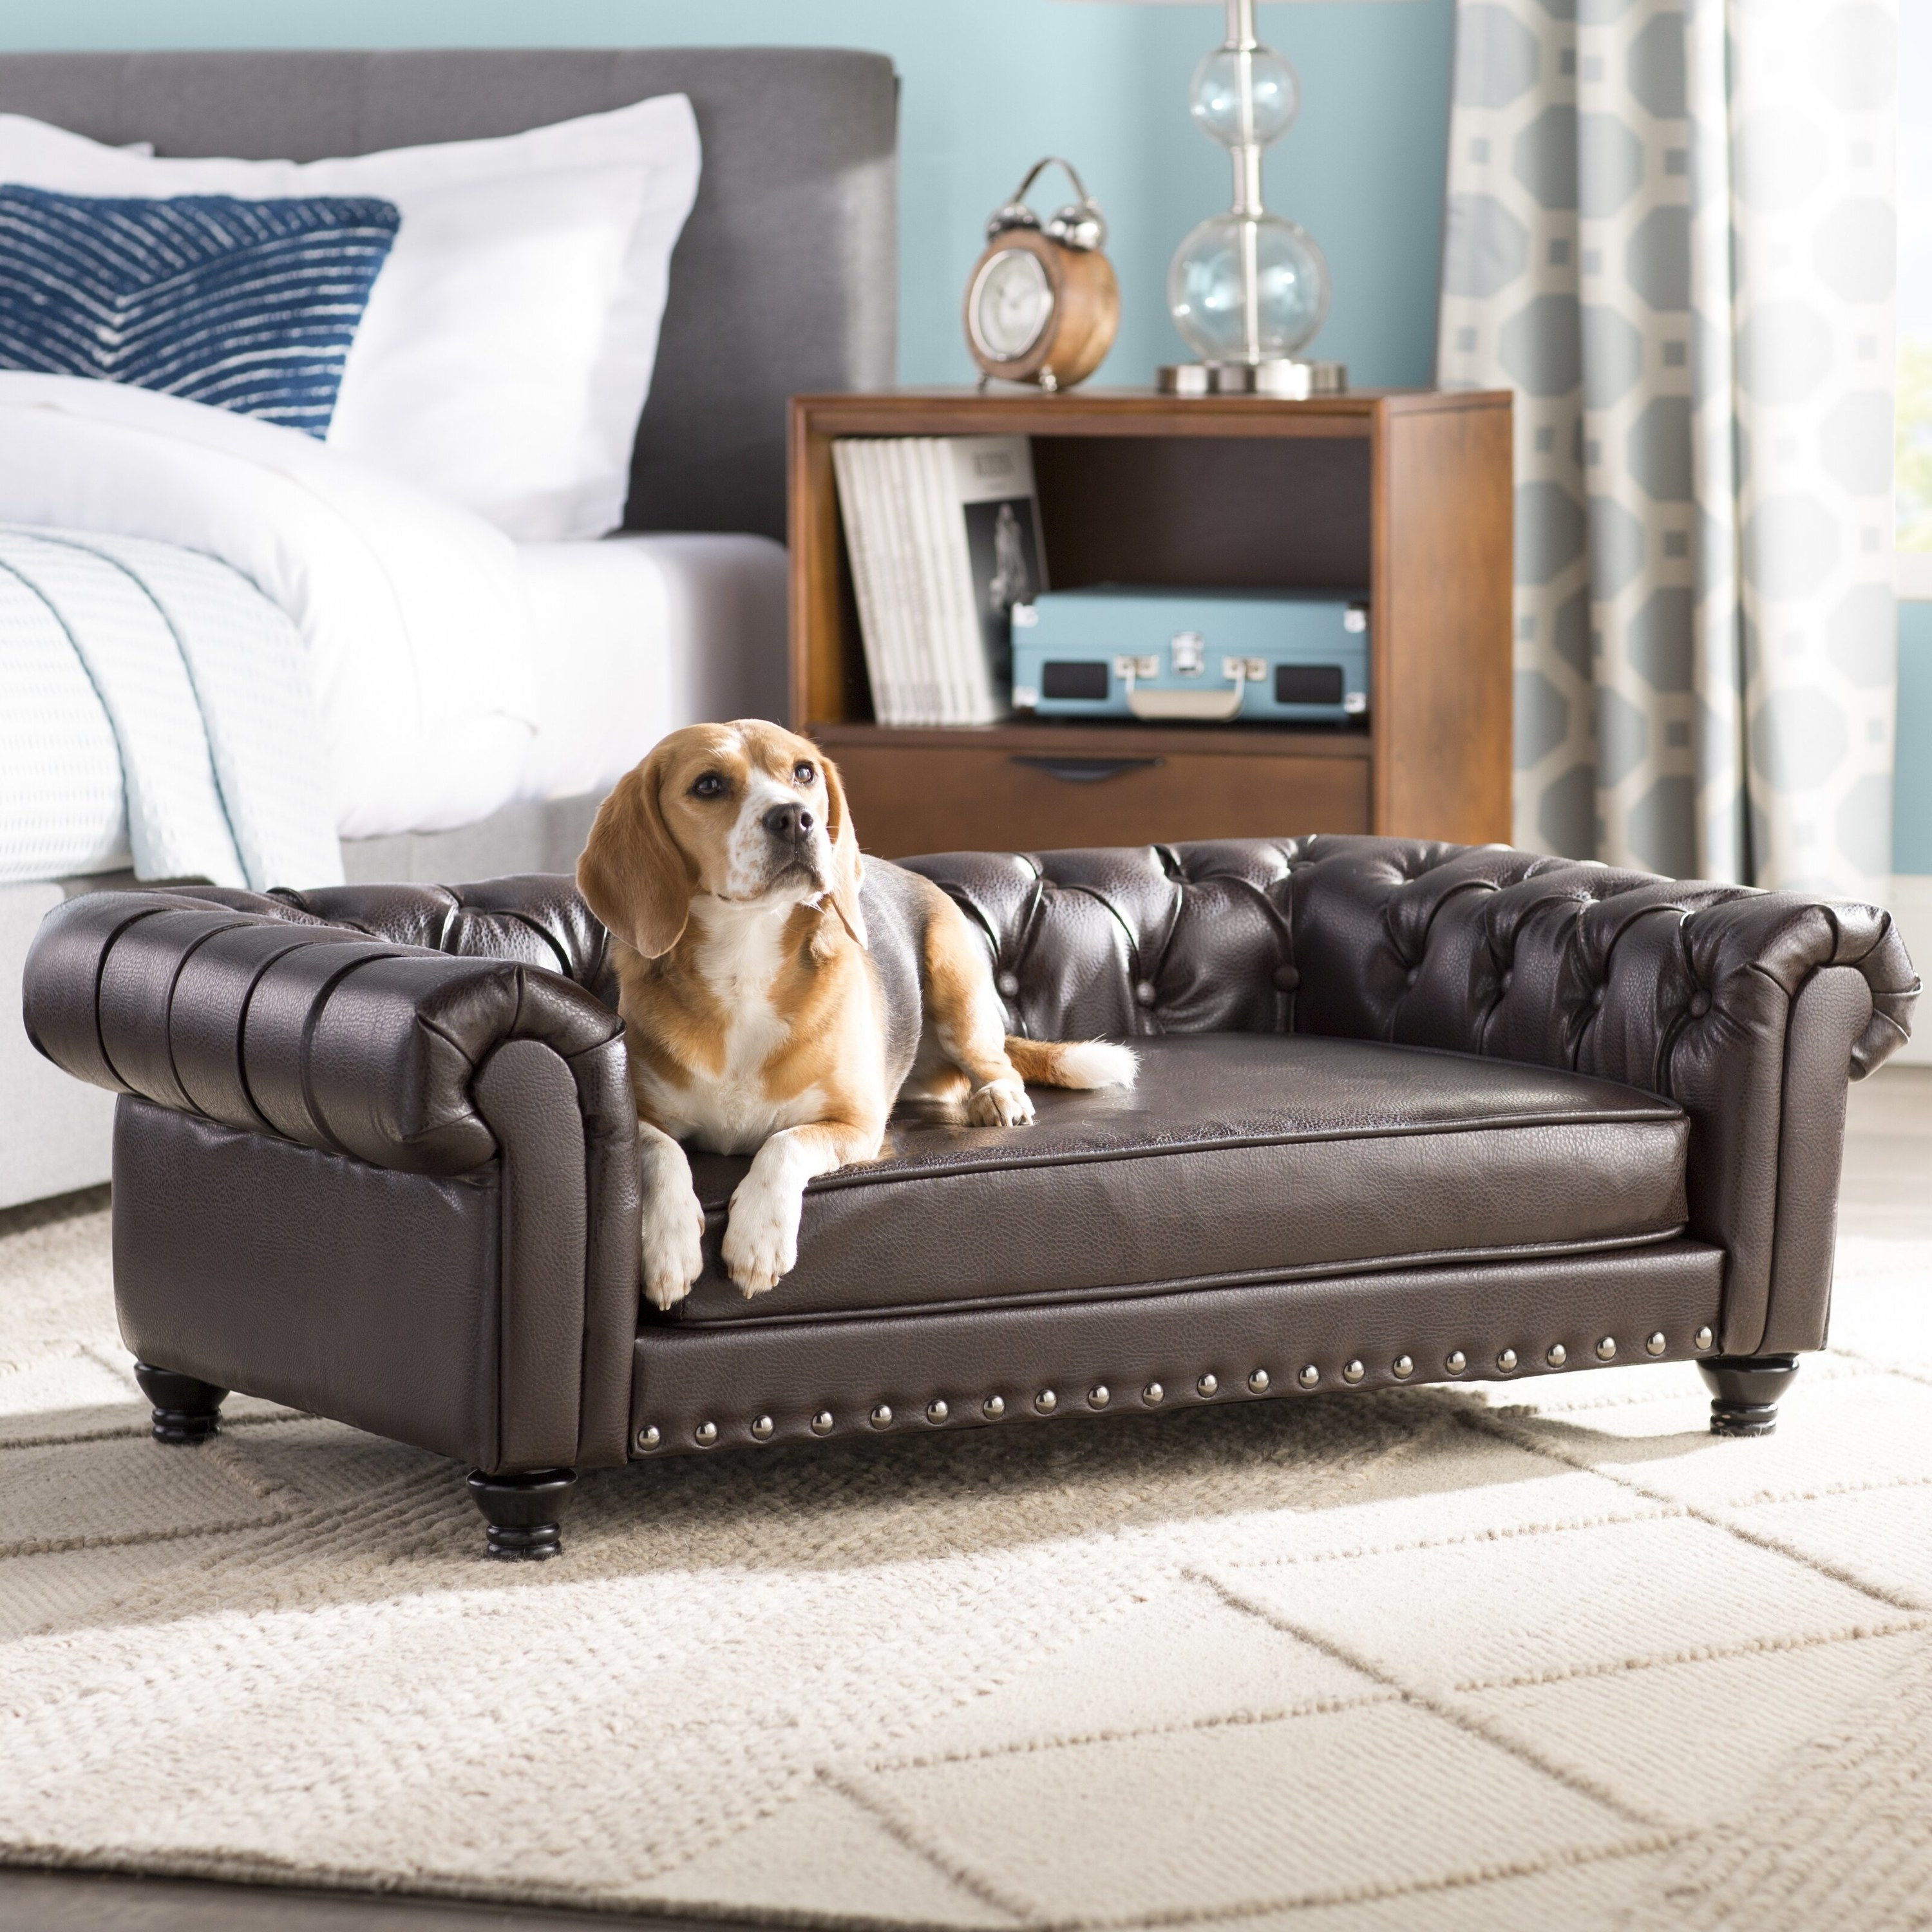 A leather tufted couch that's sized for a dog with a dog sitting on it